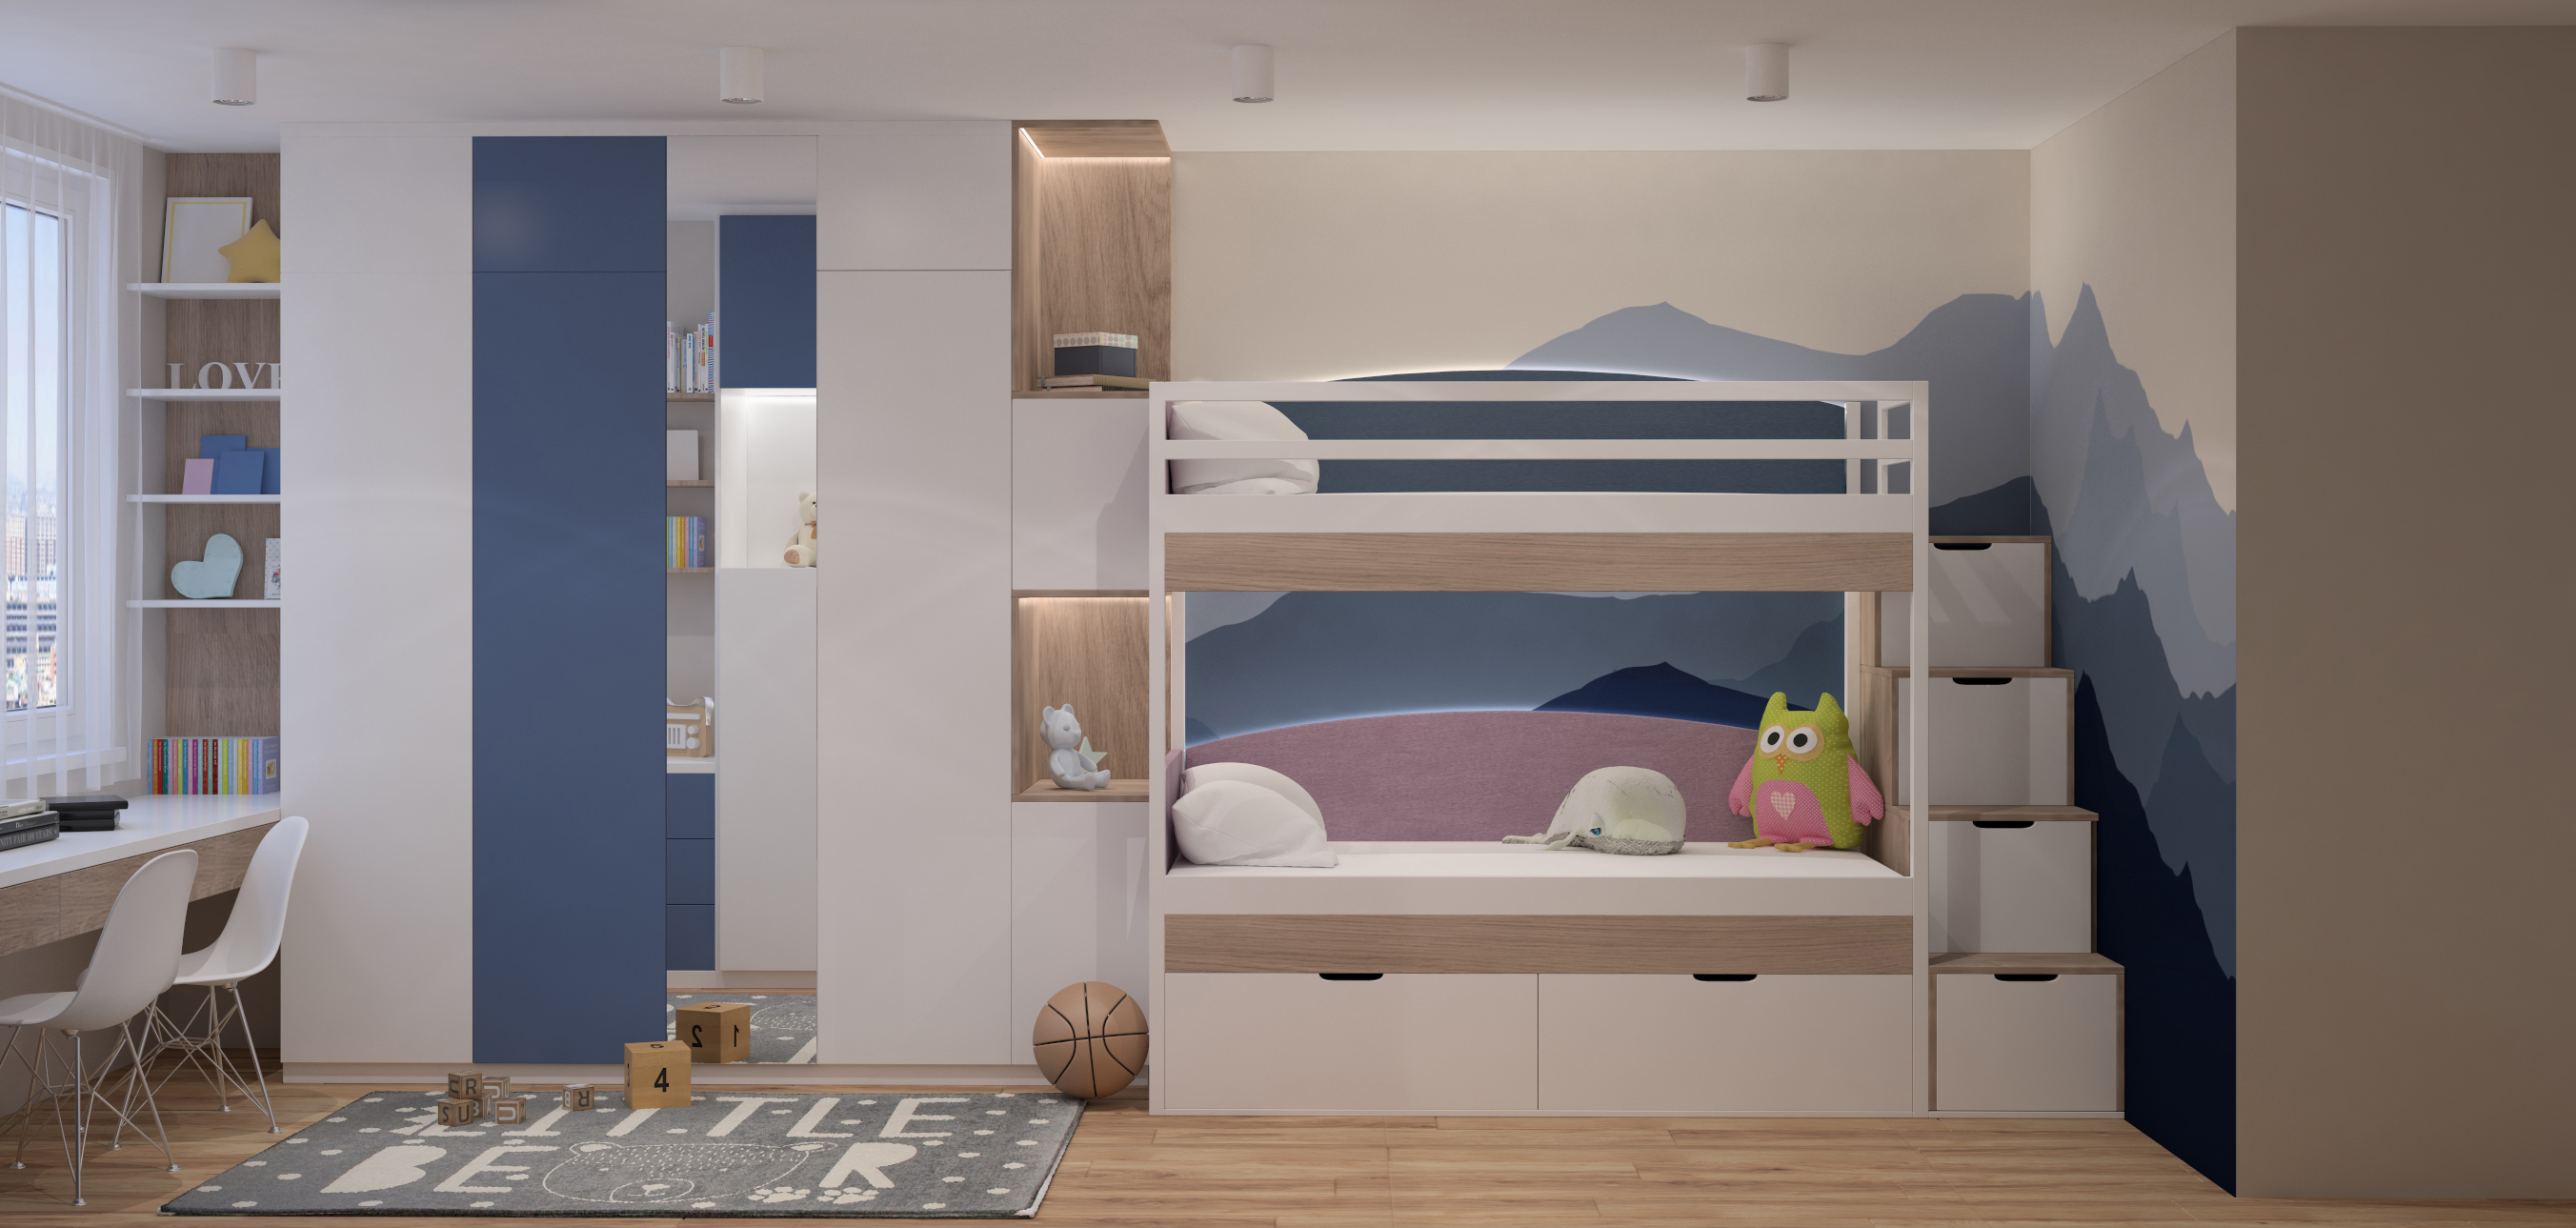 his playful kids bedroom is desighed with the understanding the kids' characters. The room style matches with the whole style of the house. Having a pastel color with simple decoration is one of the inspiration for shared room in order for them to have neutral color and the nuance or warm and calmness in their bedroom. The additional things like mat and paintings is going to make the room even better .Bunk Bed provides two bed in one room with one is in the top and another one is in the bottom. Both bed are connected by stairs. Bunk bed saves the room space and is decorated in accordance to the children's interest.